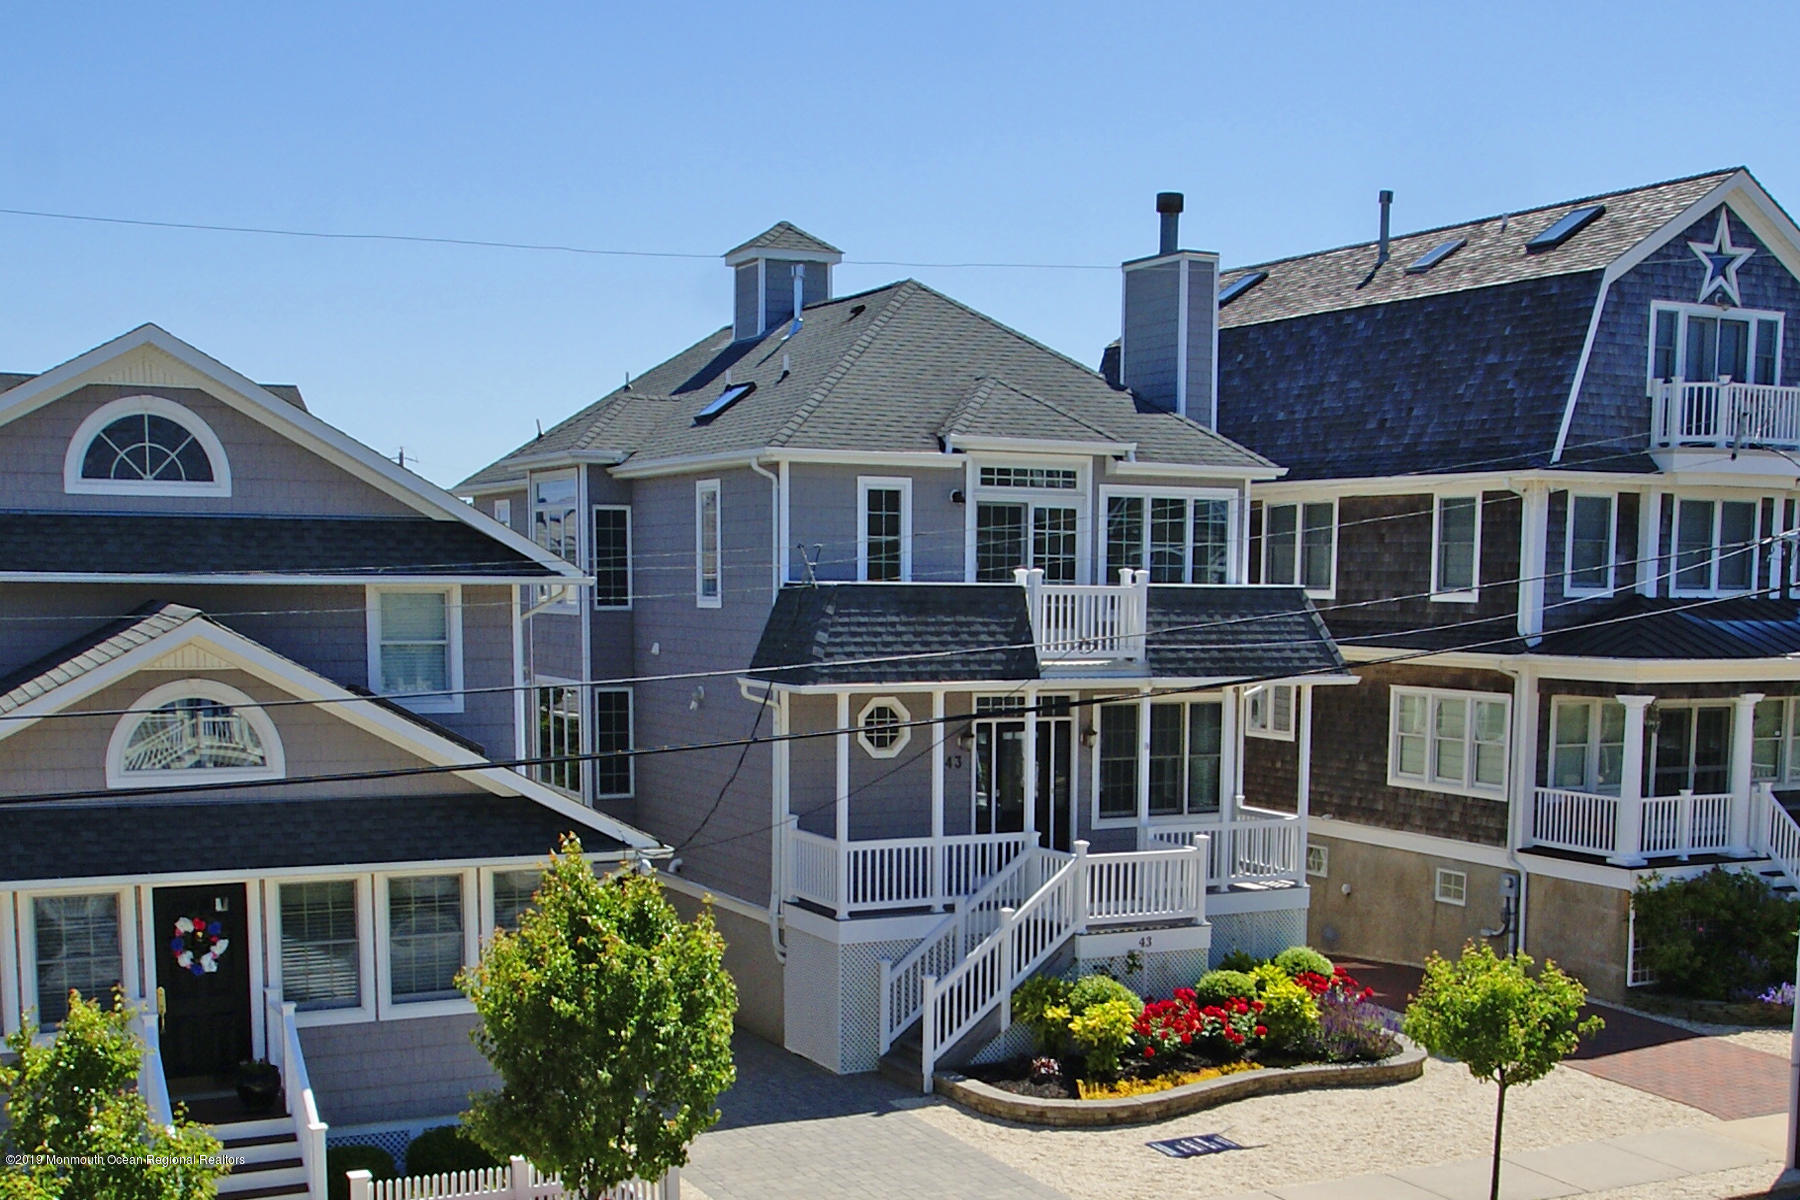 Photo of 43 3rd Avenue, Normandy Beach, NJ 08739